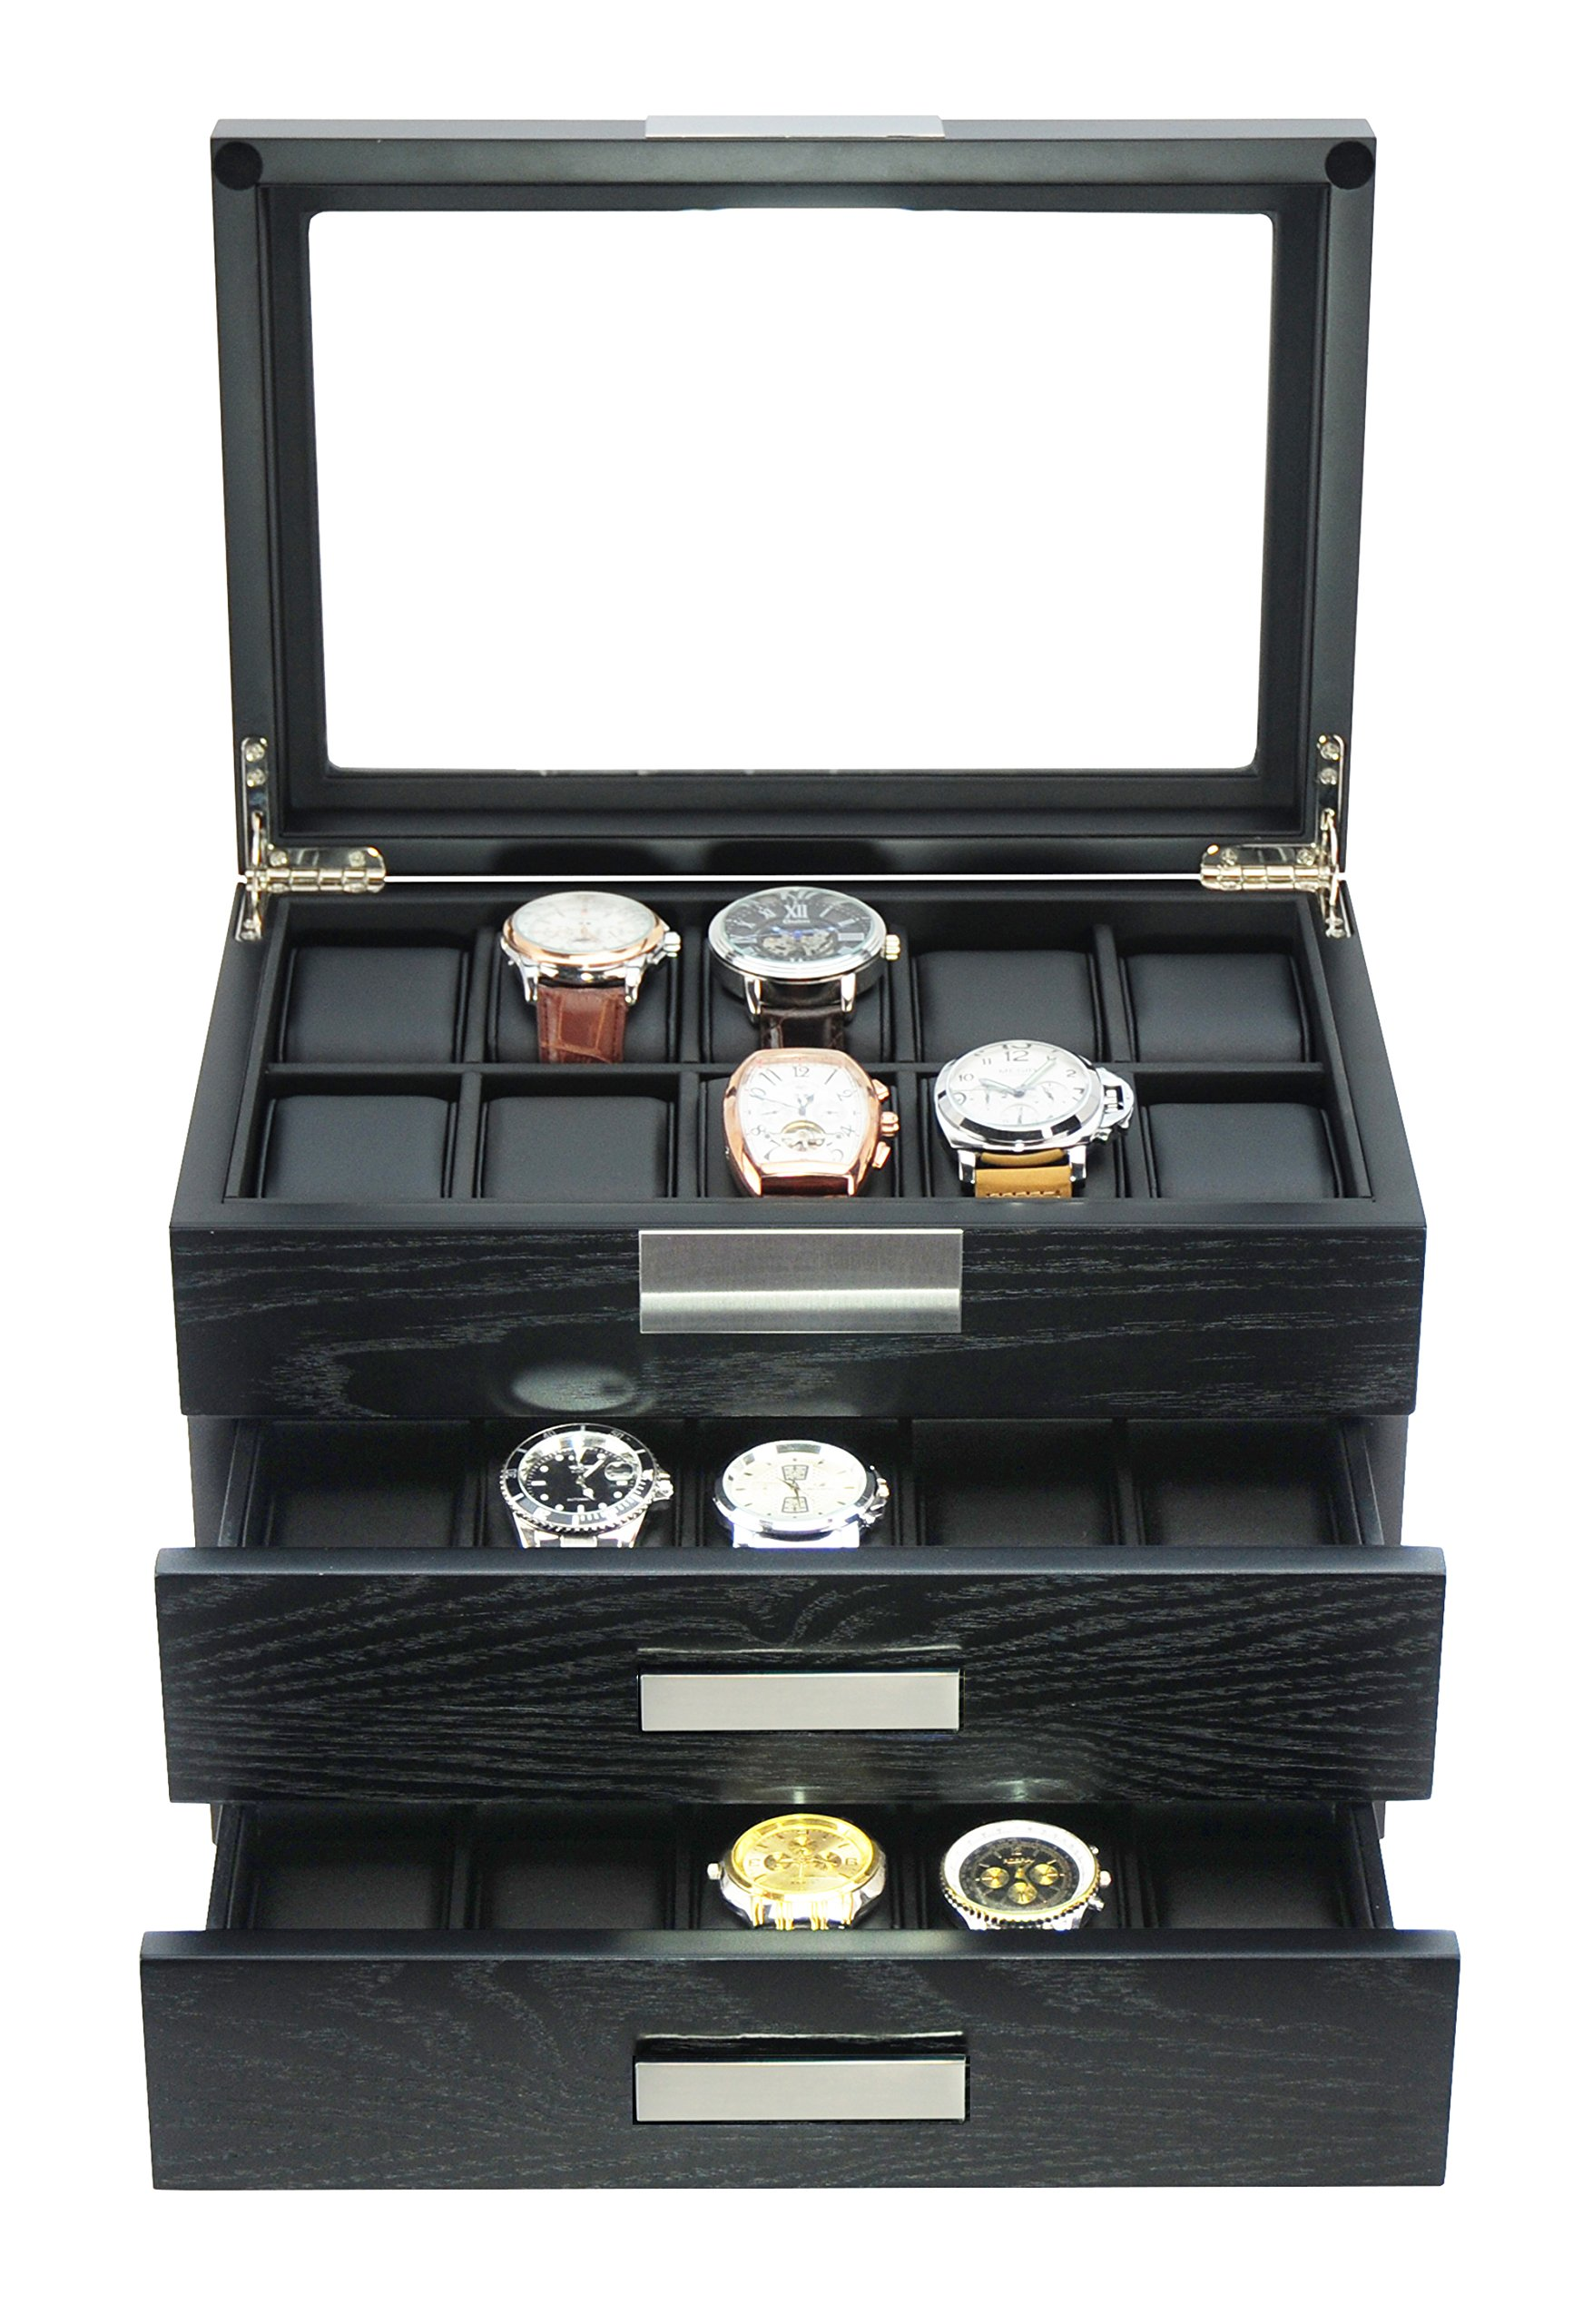 TimelyBuys 30 Ebony Wood Watch Box Display Case 3 Level Storage Jewelry Organizer with Glass Top, Stainless Steel Accents, and 2 Drawers ...